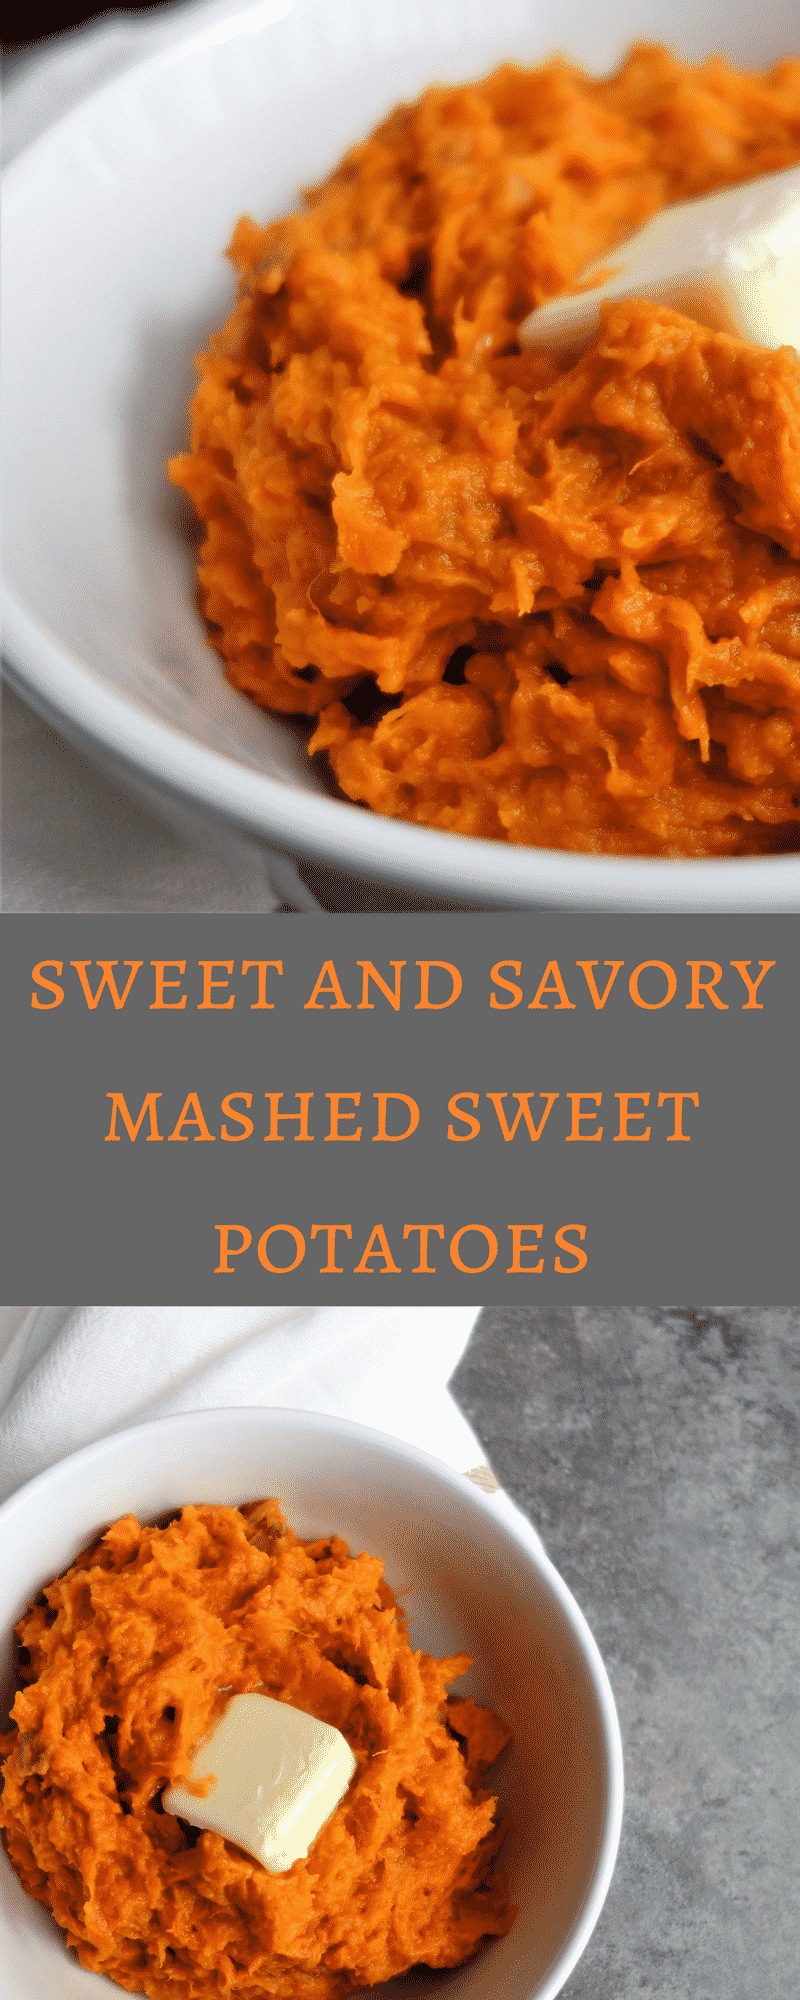 The Most Amazing Sweet and Savory Mashed Sweet Potatoes